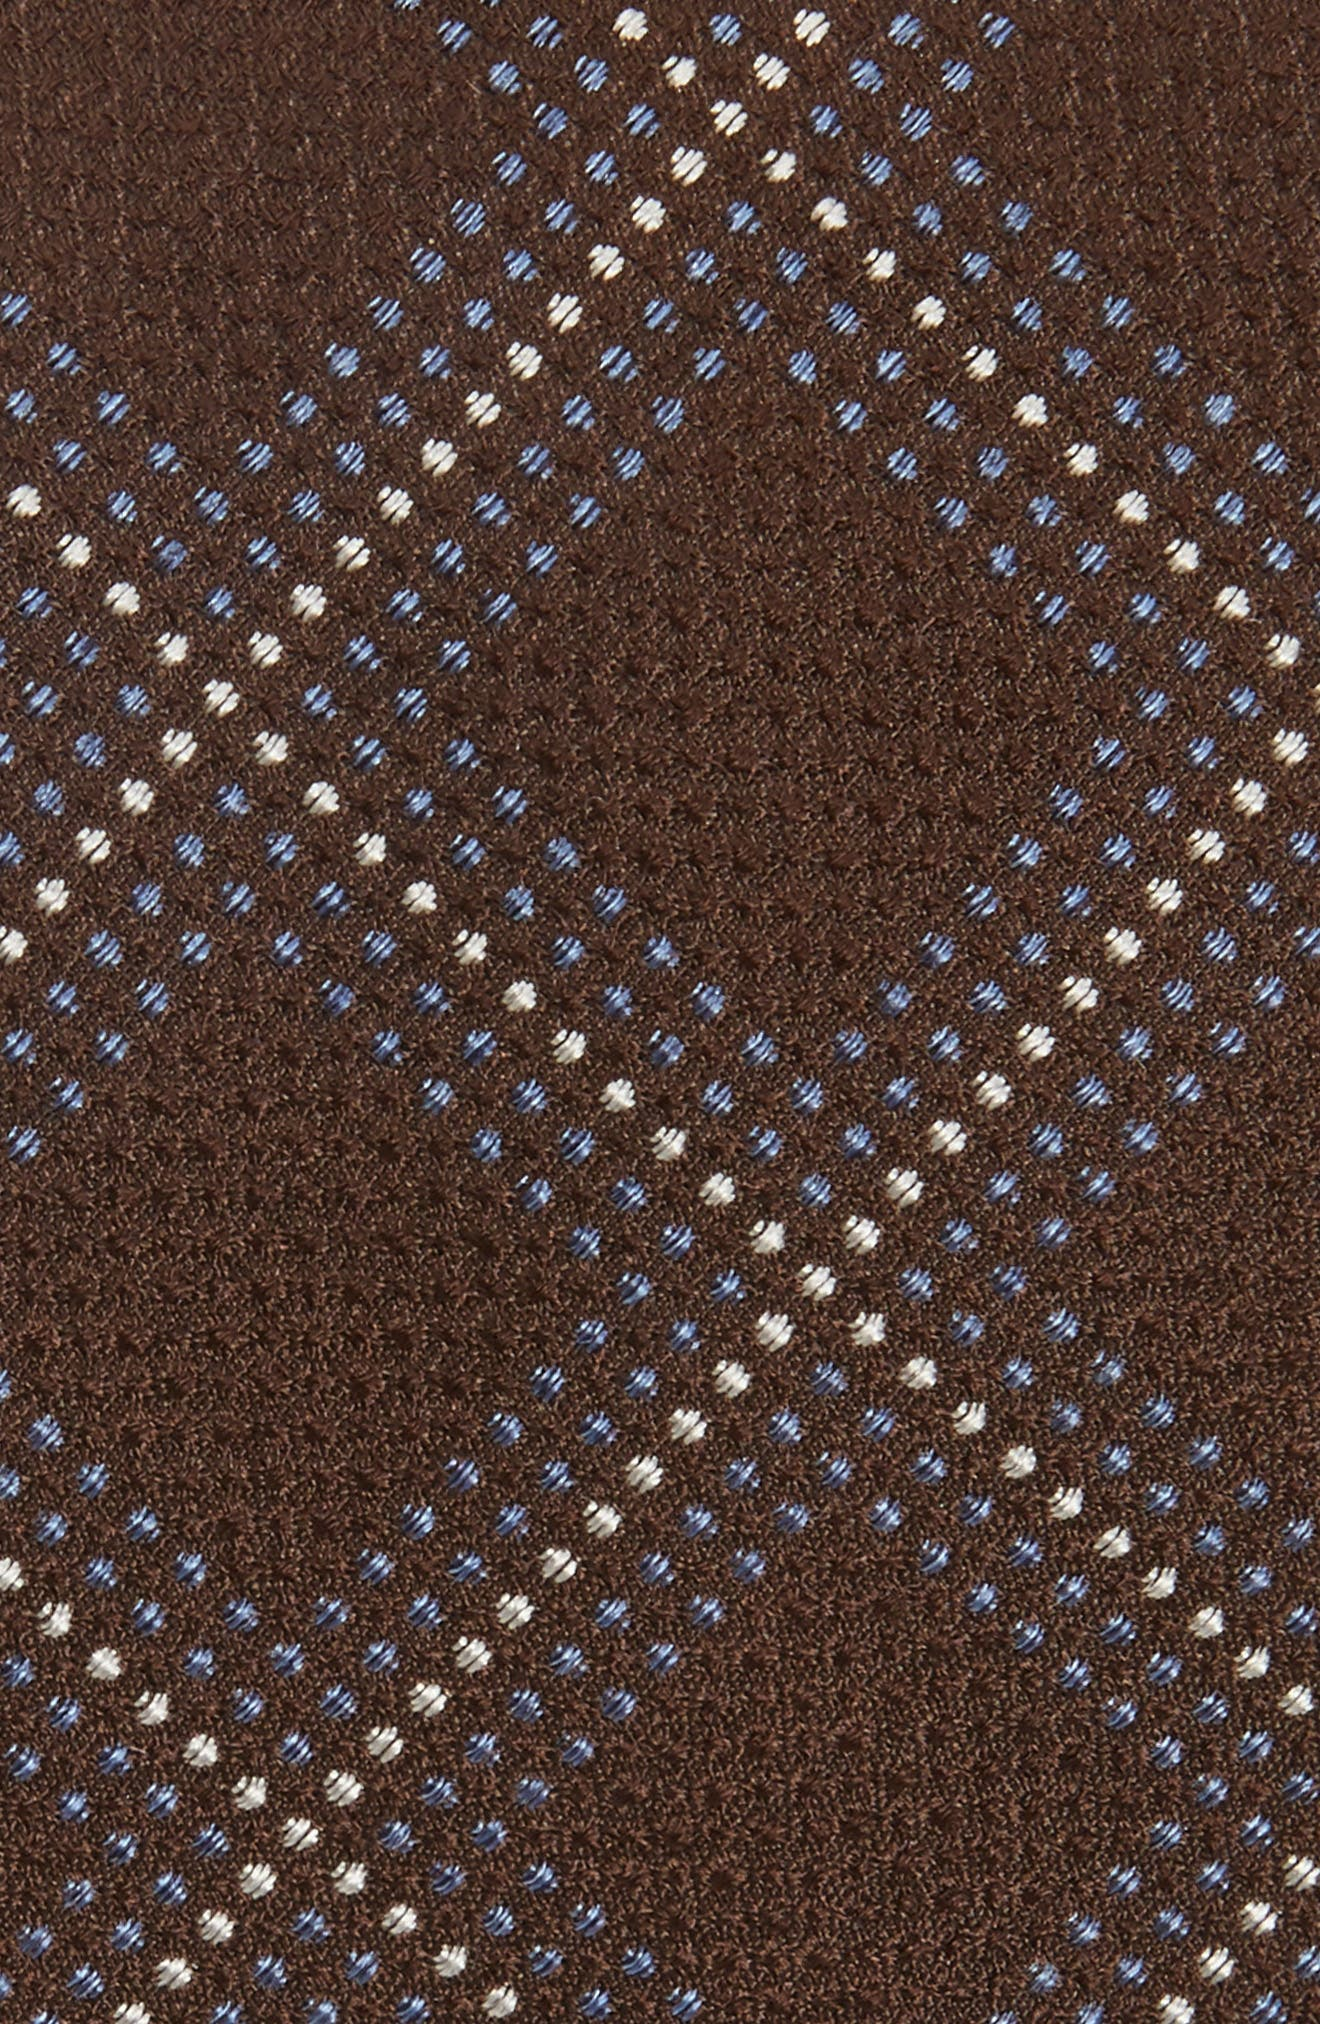 Grid Silk Blend Tie,                             Alternate thumbnail 2, color,                             Brown